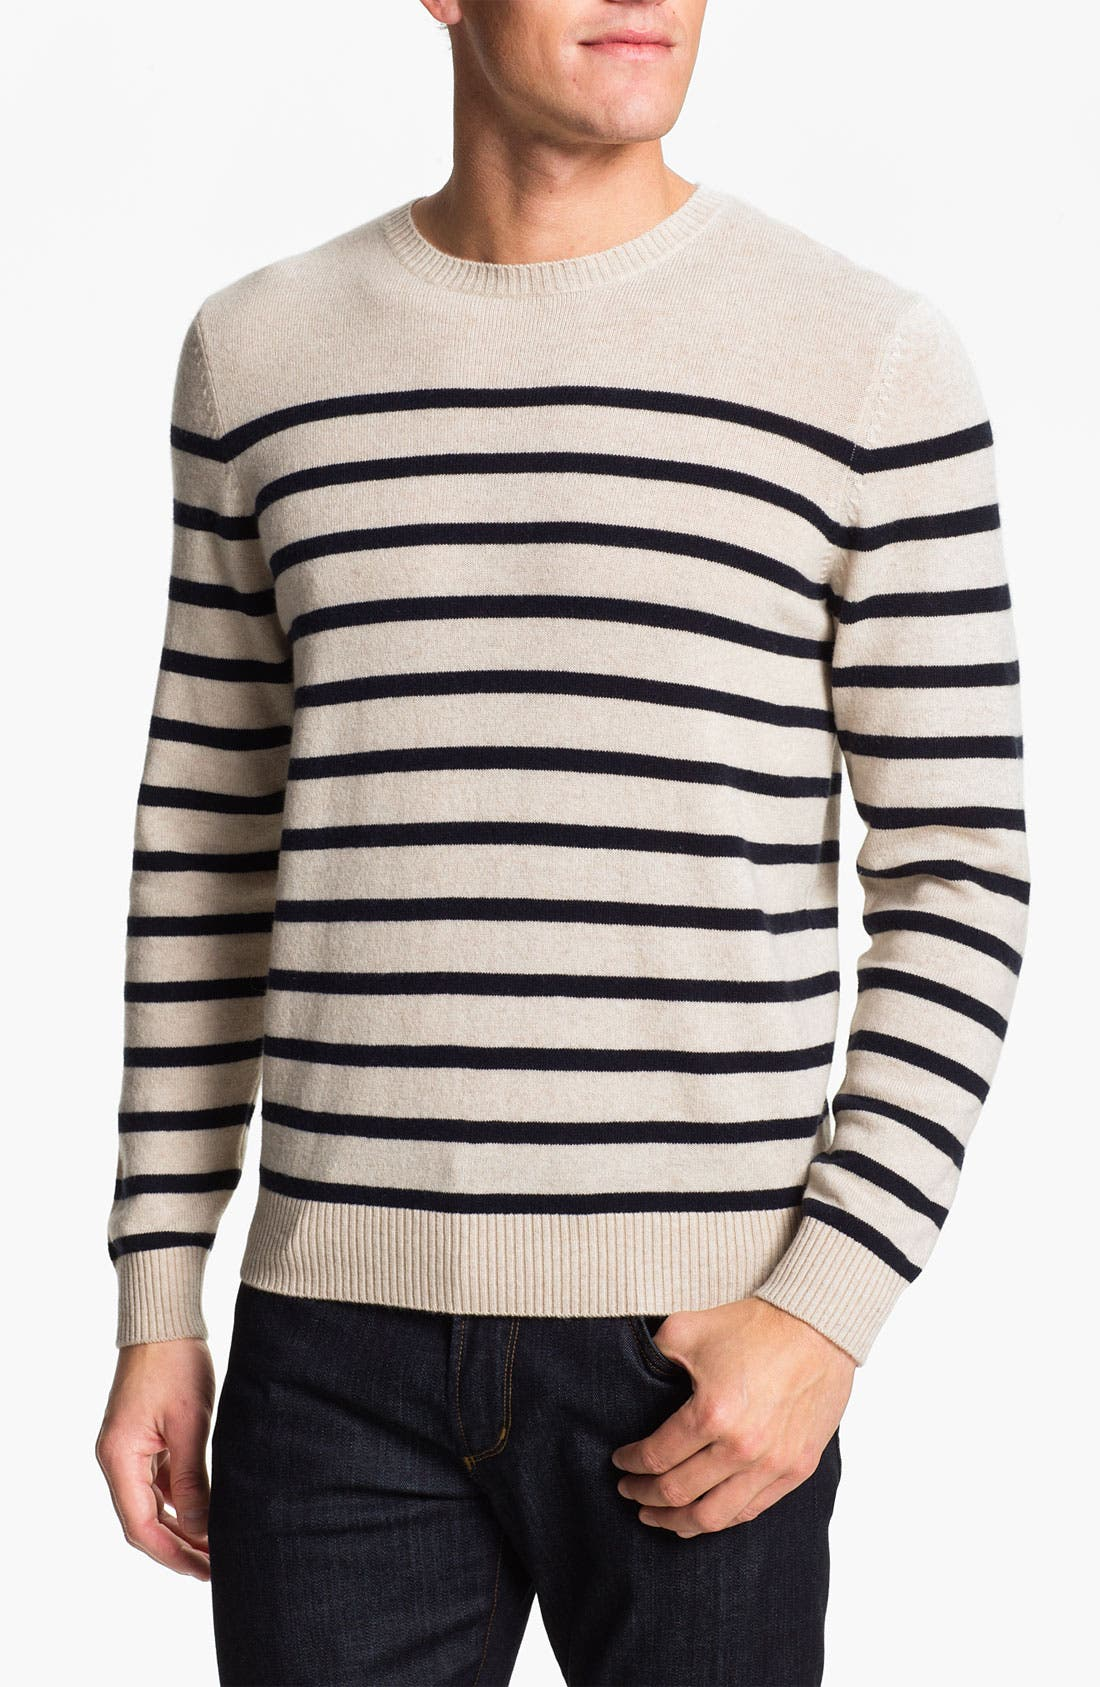 Alternate Image 1 Selected - Cullen89 Cashmere Crewneck Sweater